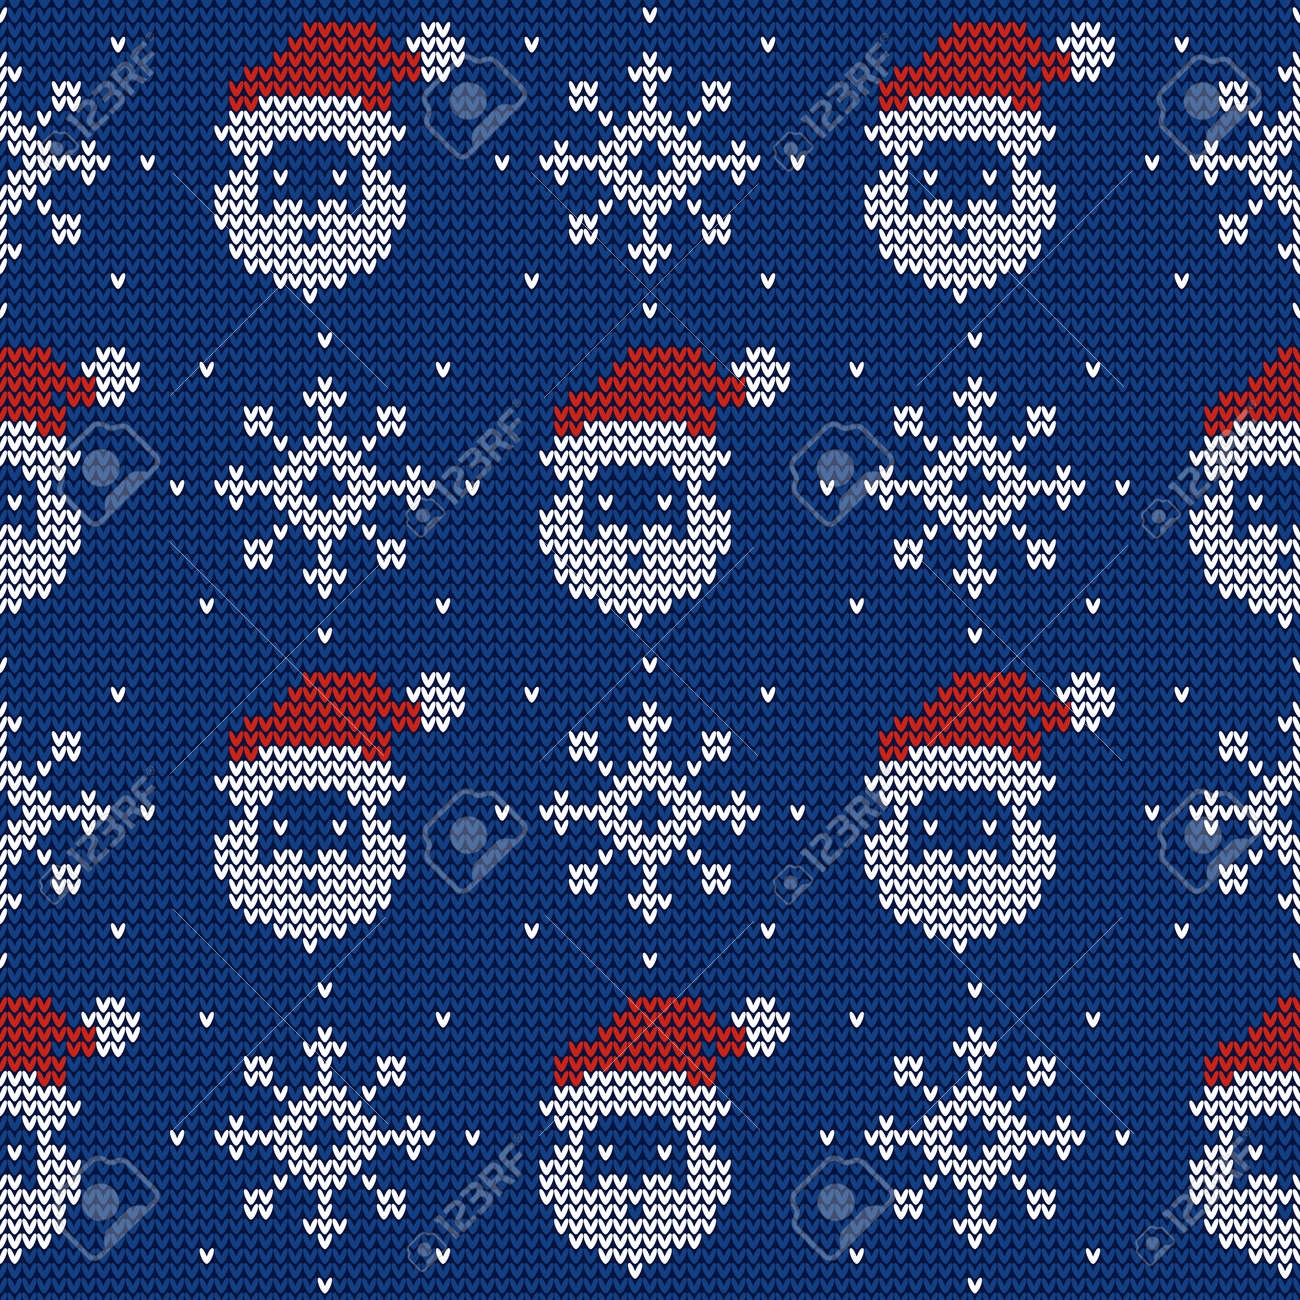 Knitted seamless pattern with Santa Clauses and snowflakes. Vector background. Blue, red and white sweater ornament. - 159194977